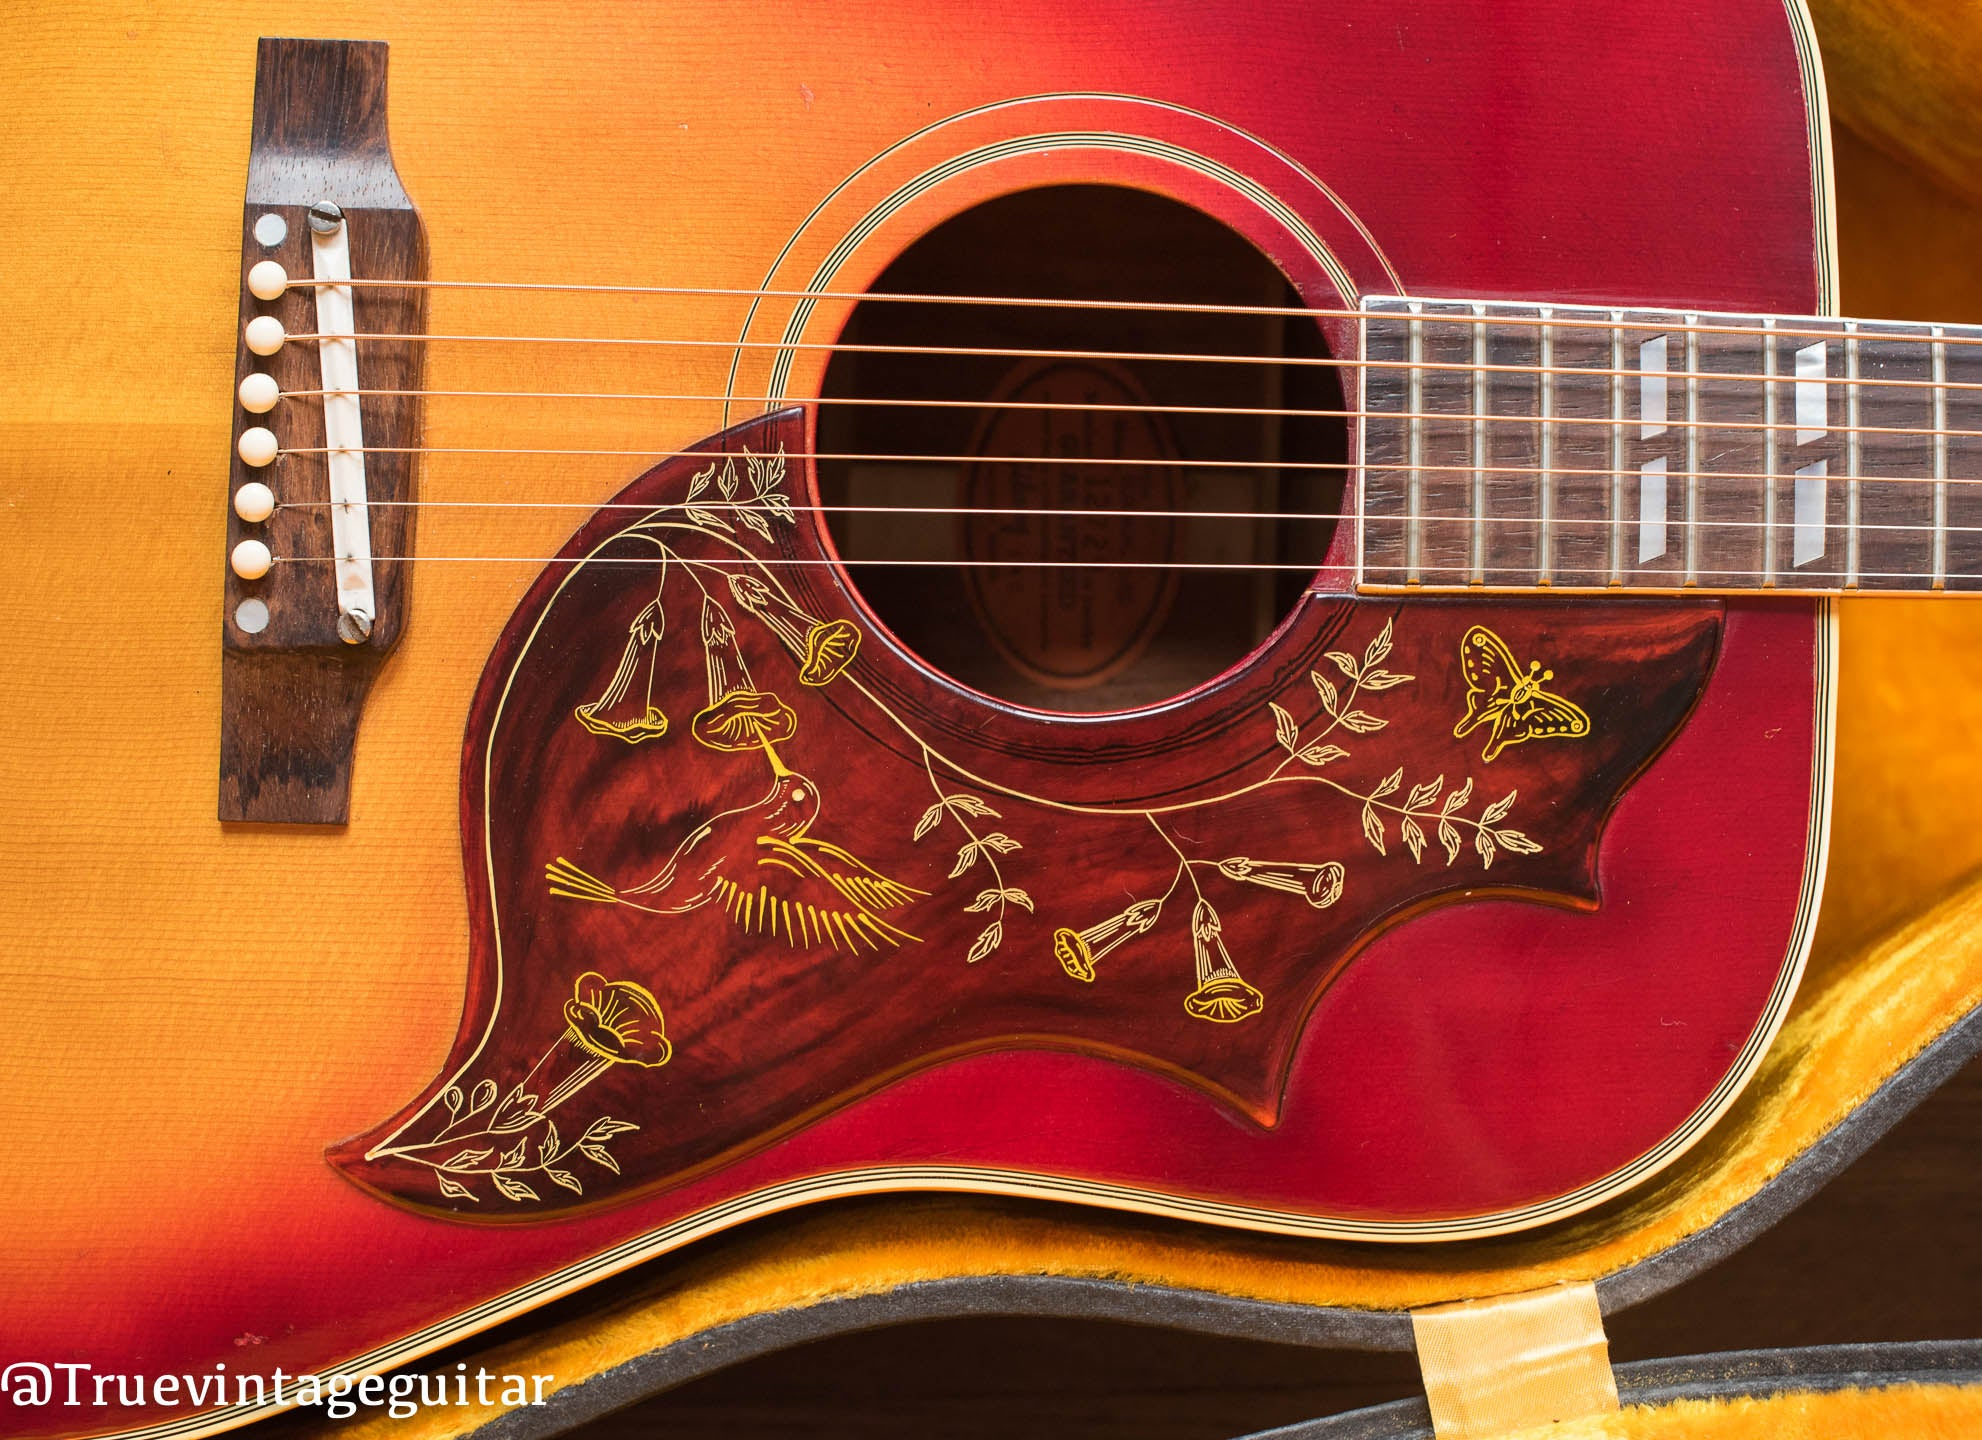 Engraved Hummingbird pickguard Gibson guitar